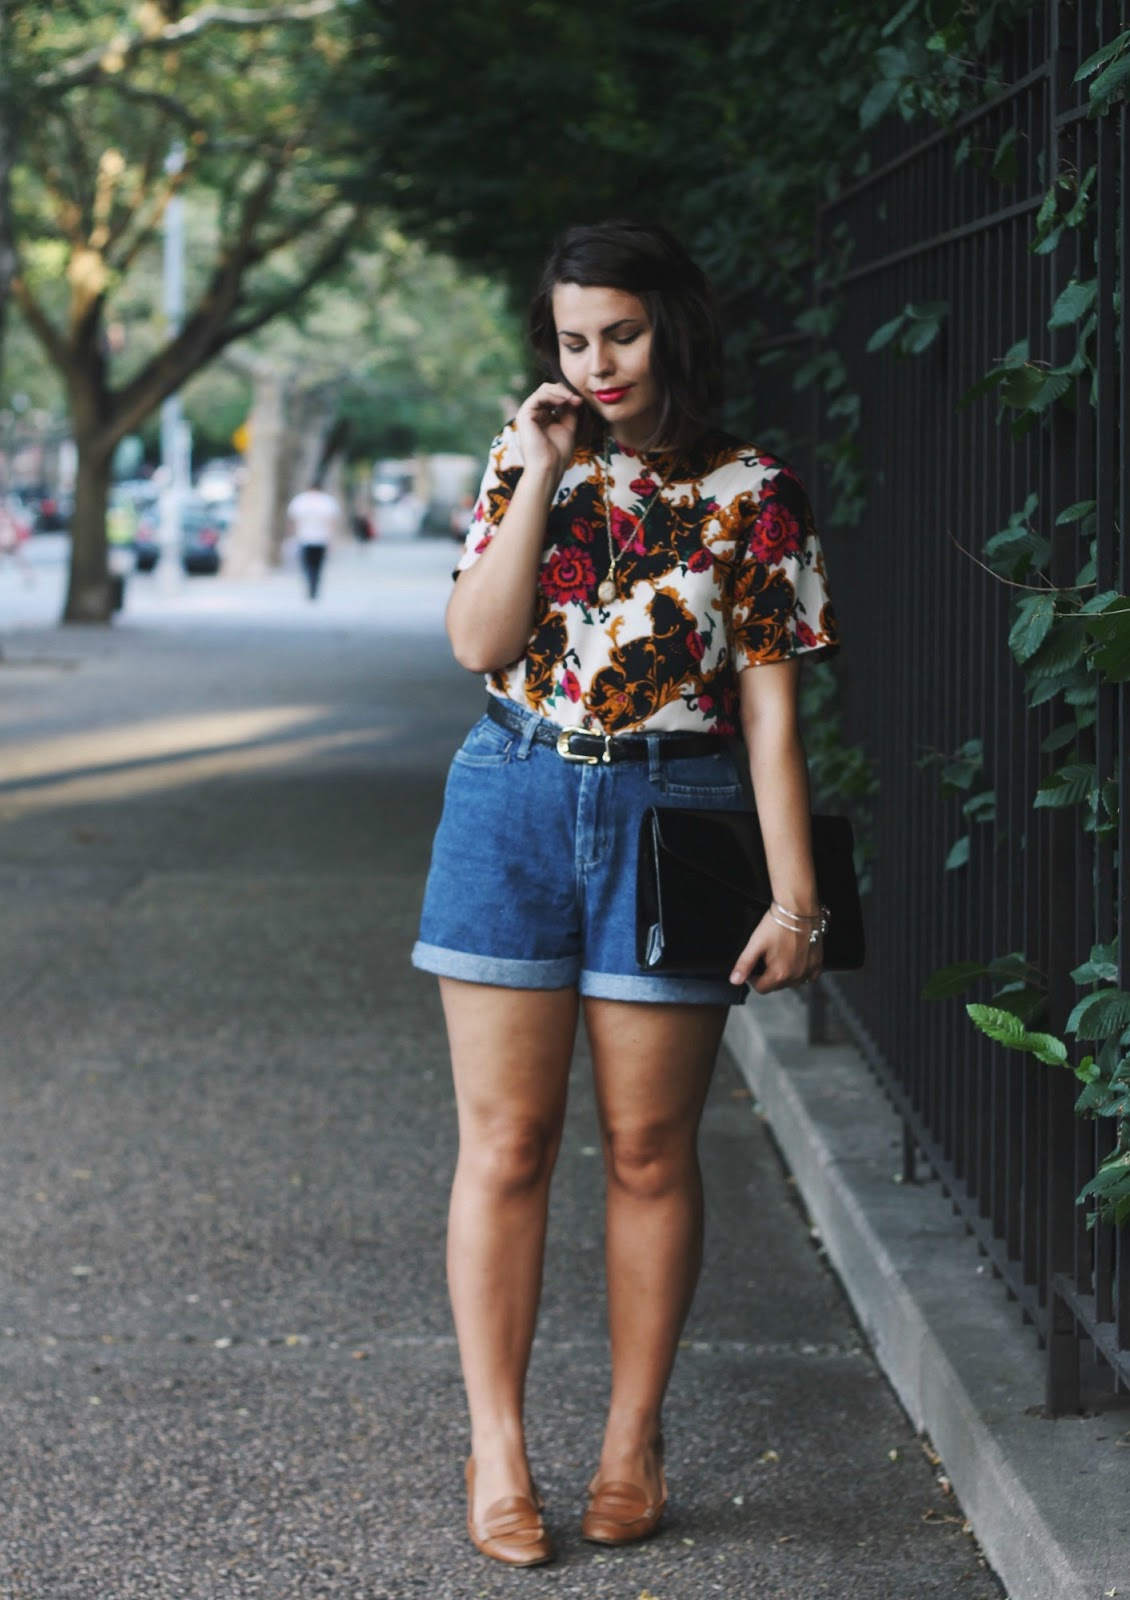 Vintage Floral Blouse, High-waisted Denim Shorts, Snakeskin Betl, Loafers, and Cherry Bomb Lipstick | Someone Like You